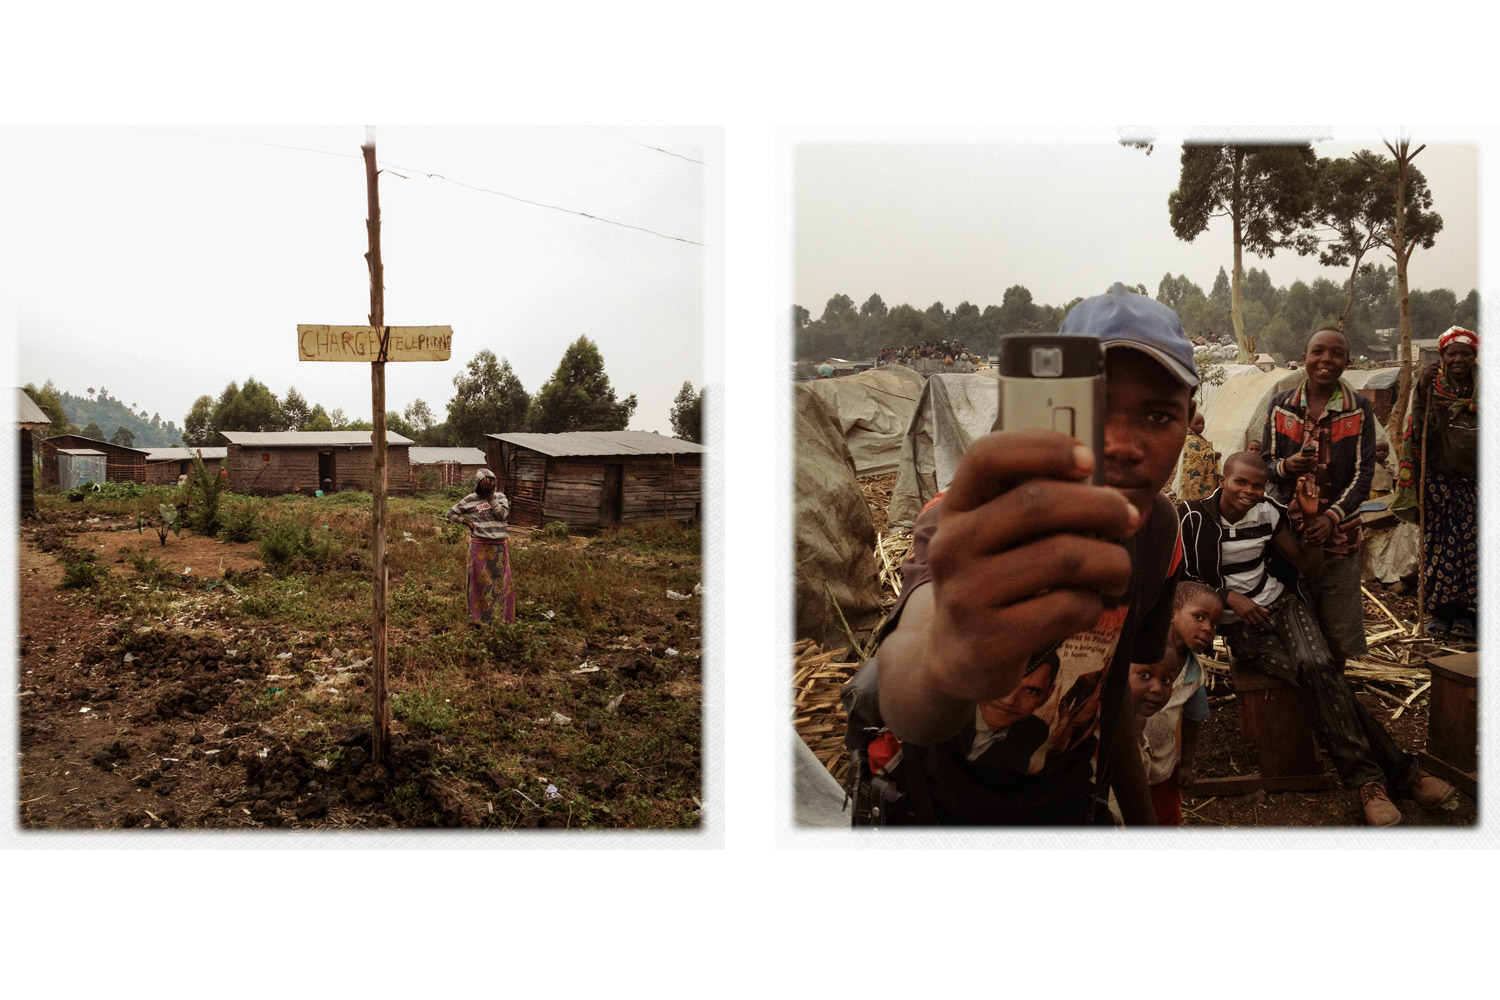 A camp for internally displaced persons (IDPs) in Kibati, 10km north of Goma. A sign advertising a place to charge your phone (left). A young man demonstrates the democratic nature of mobile phone photography (right).